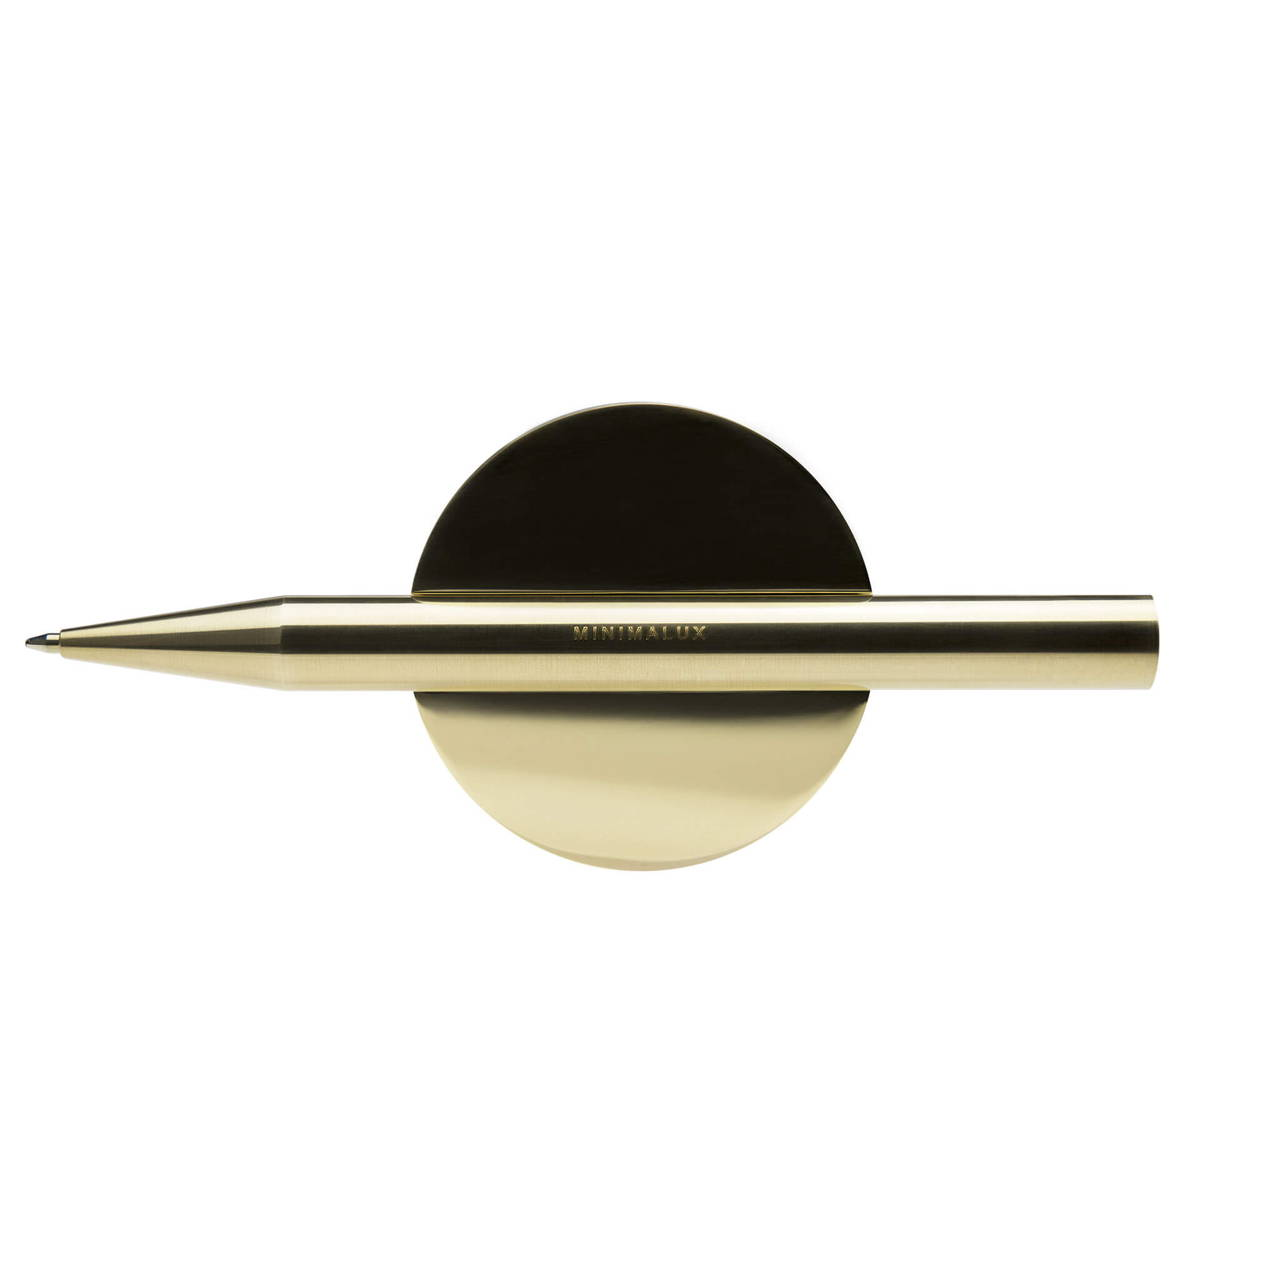 Brass Pen Rest with Ballpoint